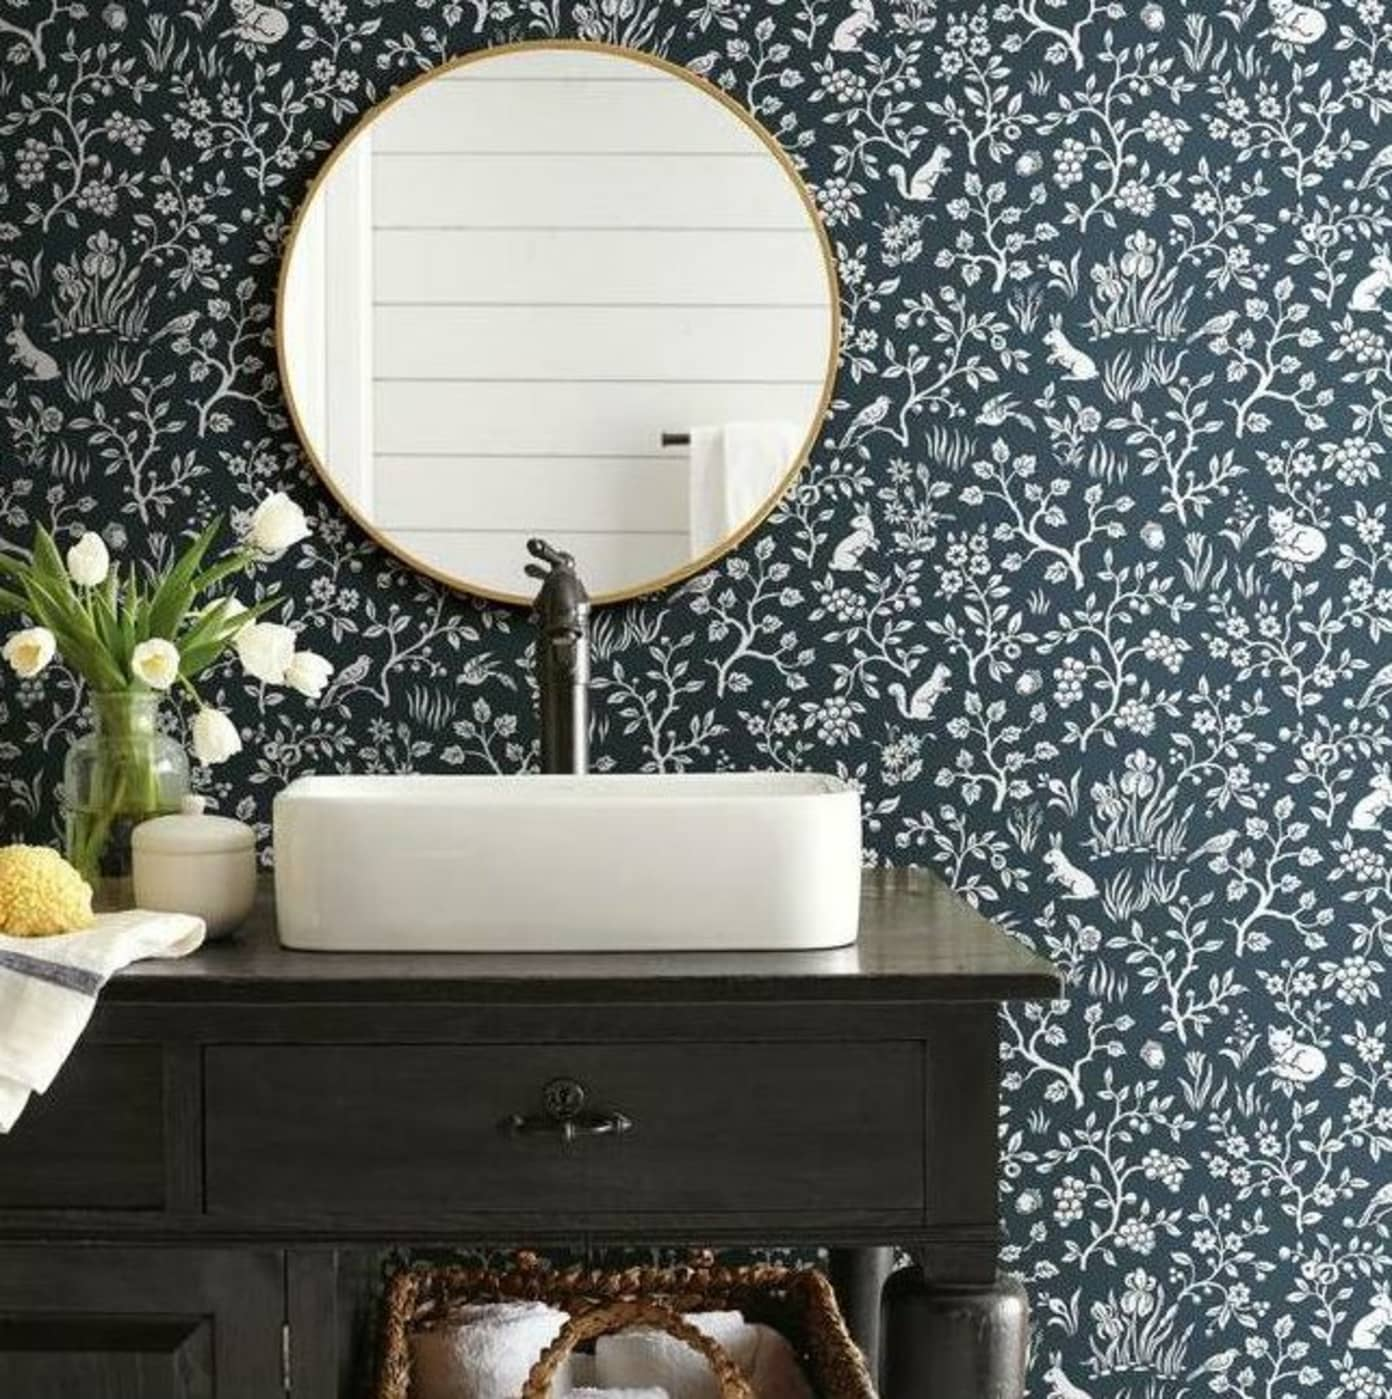 Joanna Gaines' Newest Magnolia Home Wallpaper Collection is a Printed Dream